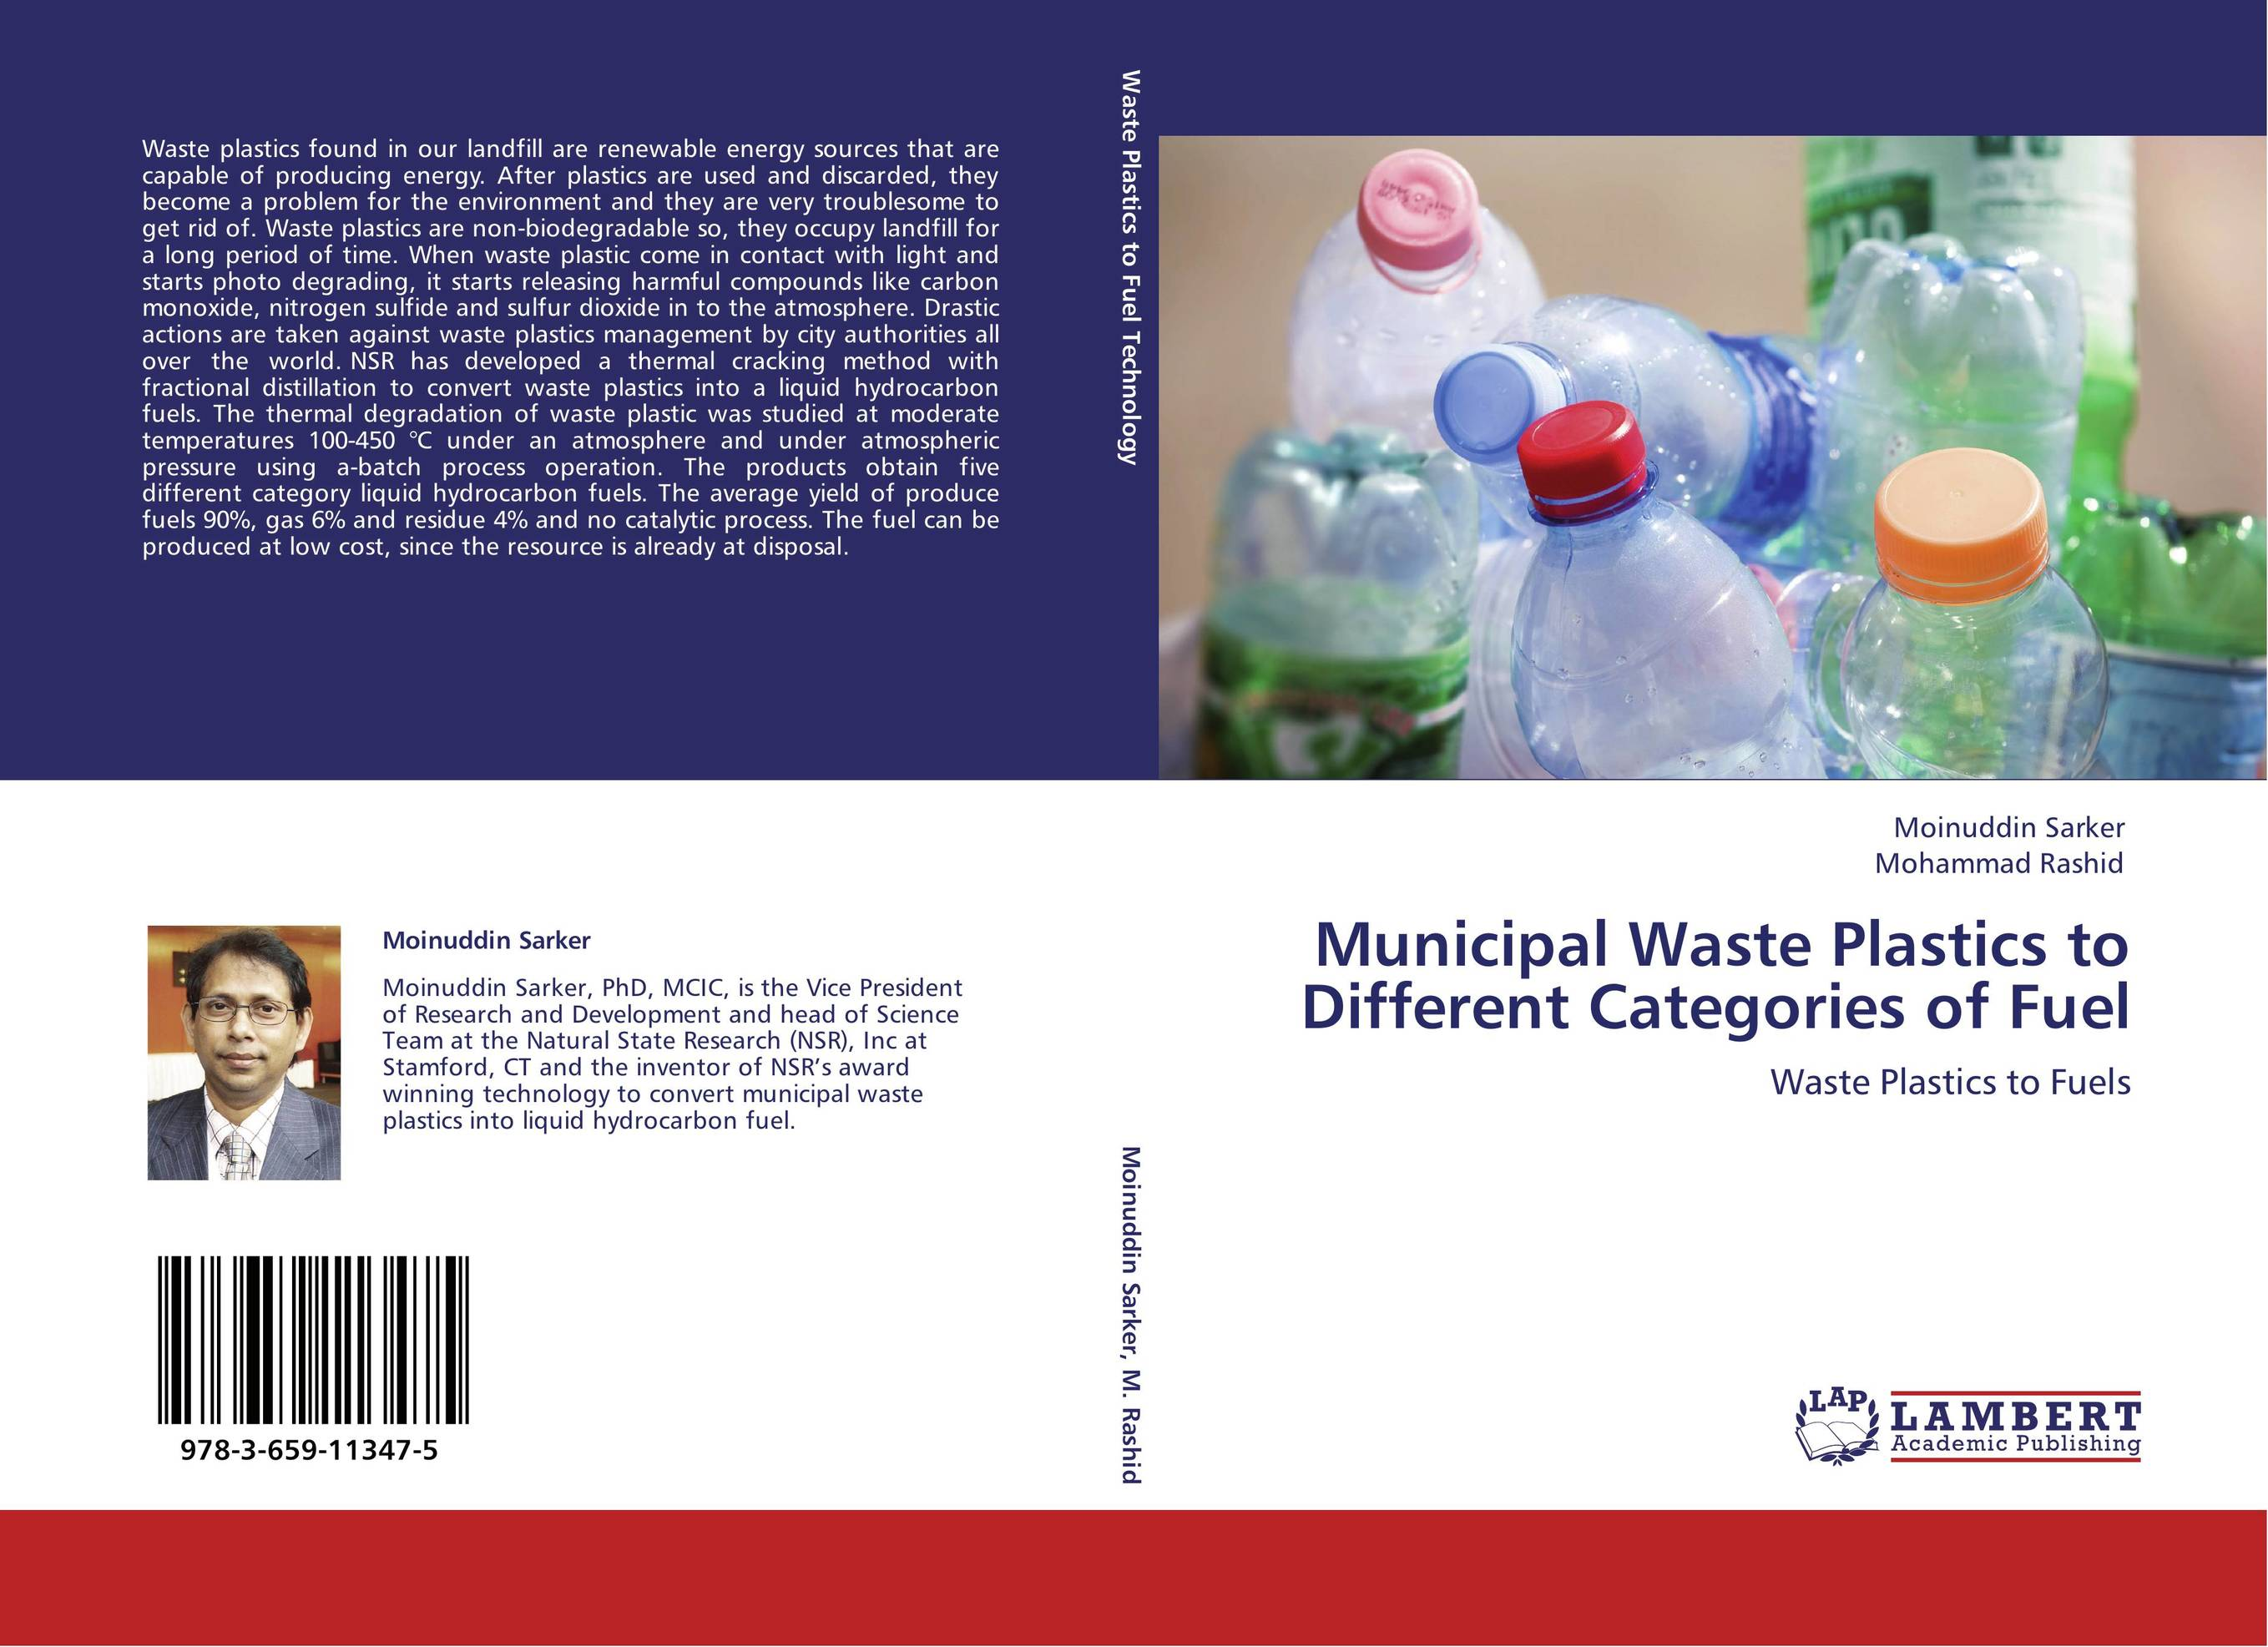 thermal characteristics of different plastics essay 1 material properties of plastics 11 formation and structure the basic structure of plastics (or polymers) is given by macromolecule chains, formulated from monomer units by chemical reactions.